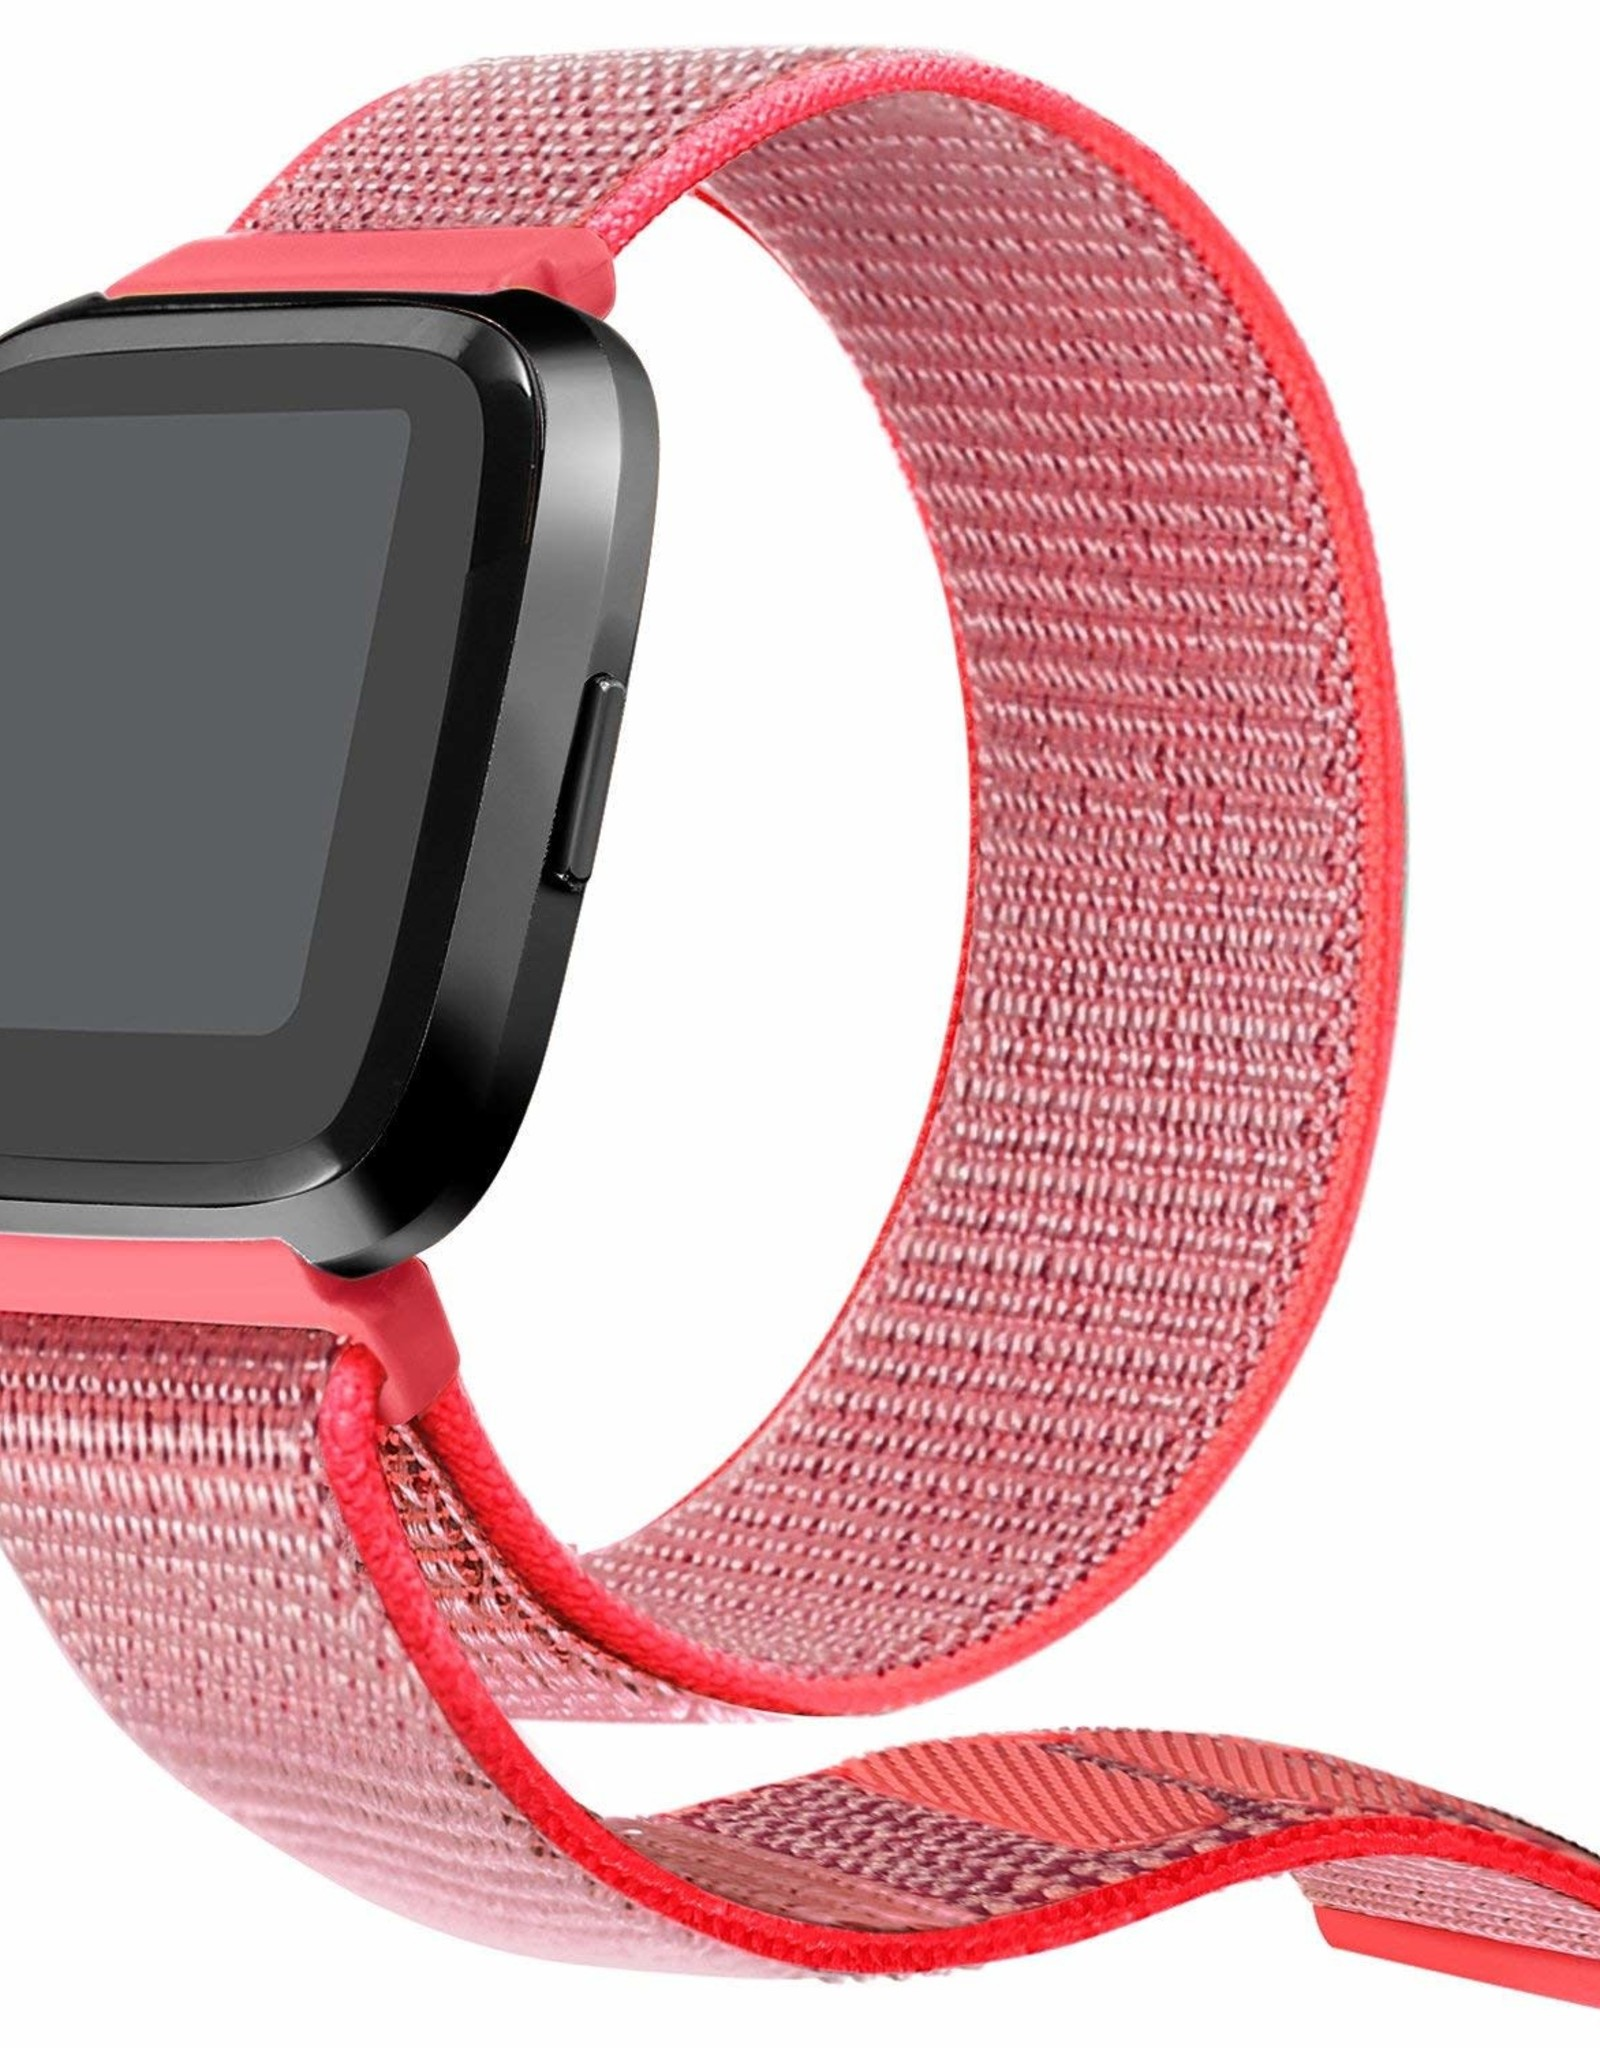 StrapsCo | Nylon Band For Fitbit Versa Neon Pink | FB.NY4.13A